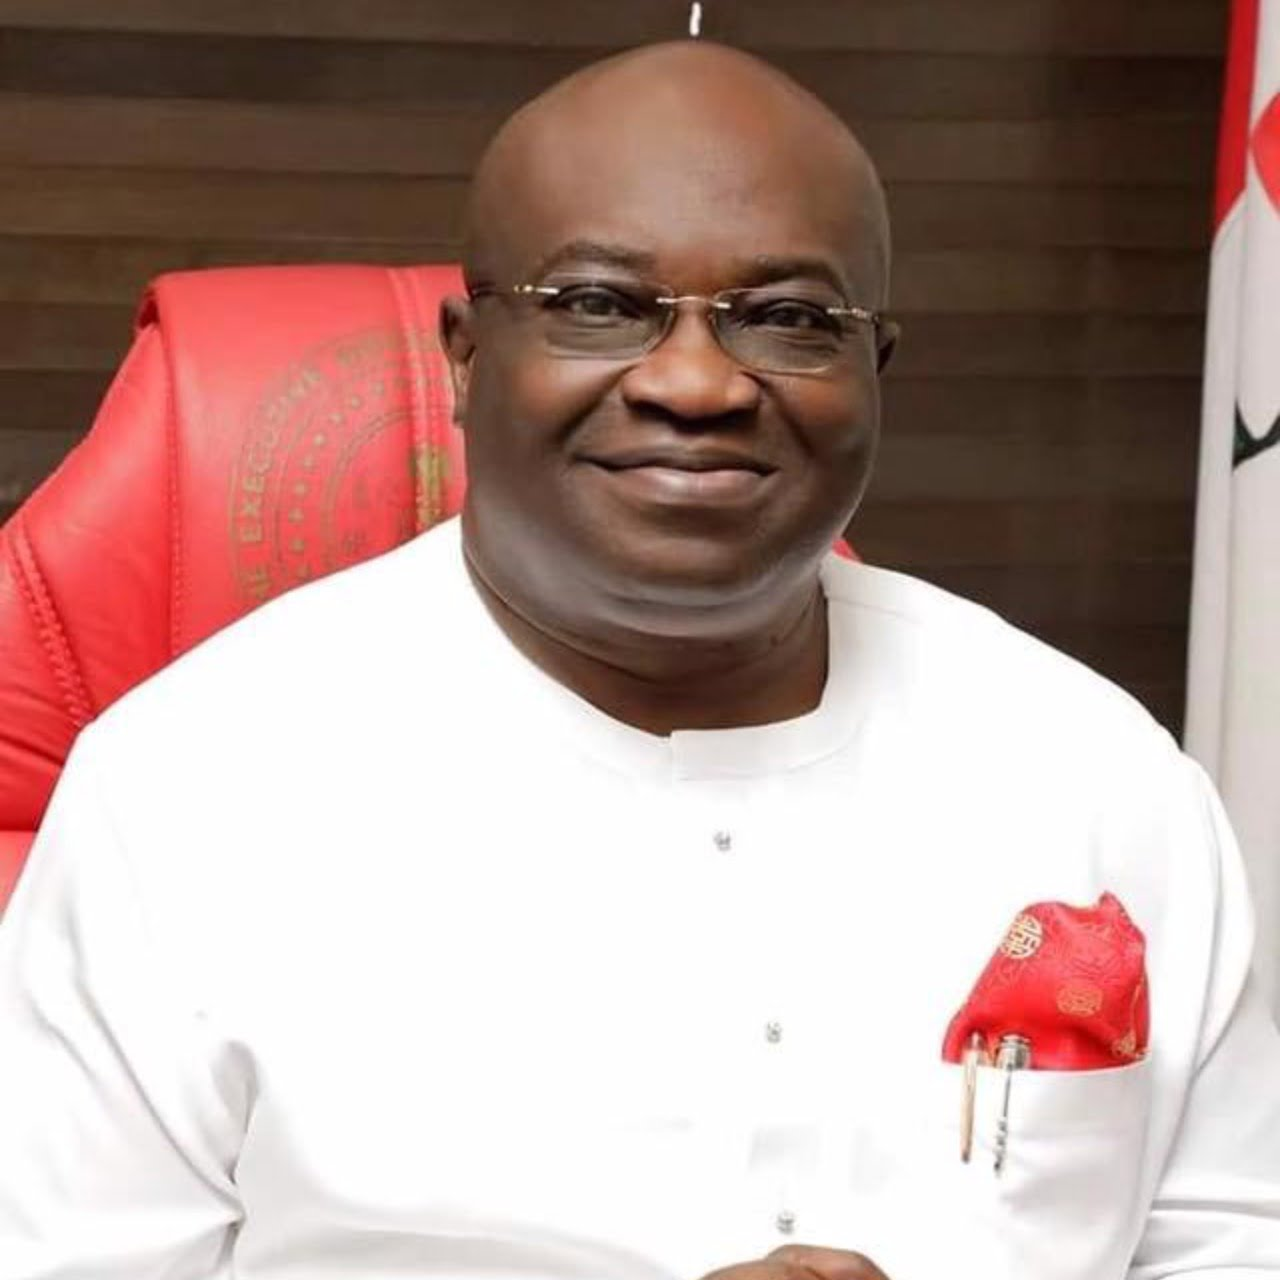 Nigeria news : Industrialization: Ikpeazu dispatches team to Turkey, Bangladesh